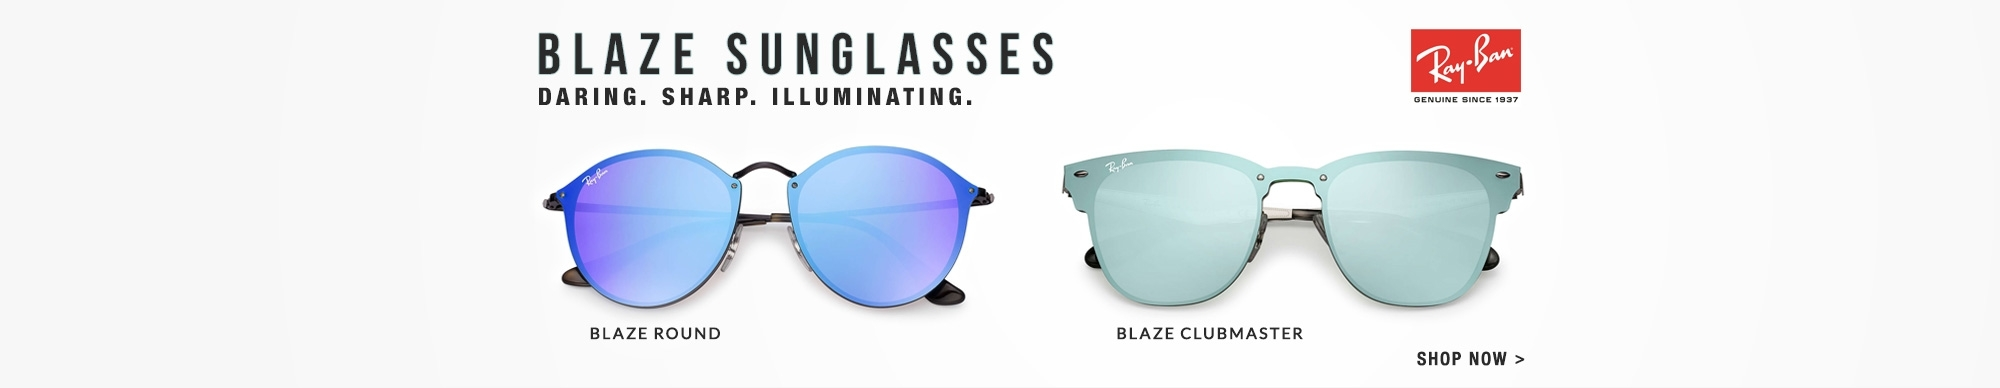 Ray-Ban Blaze Collection